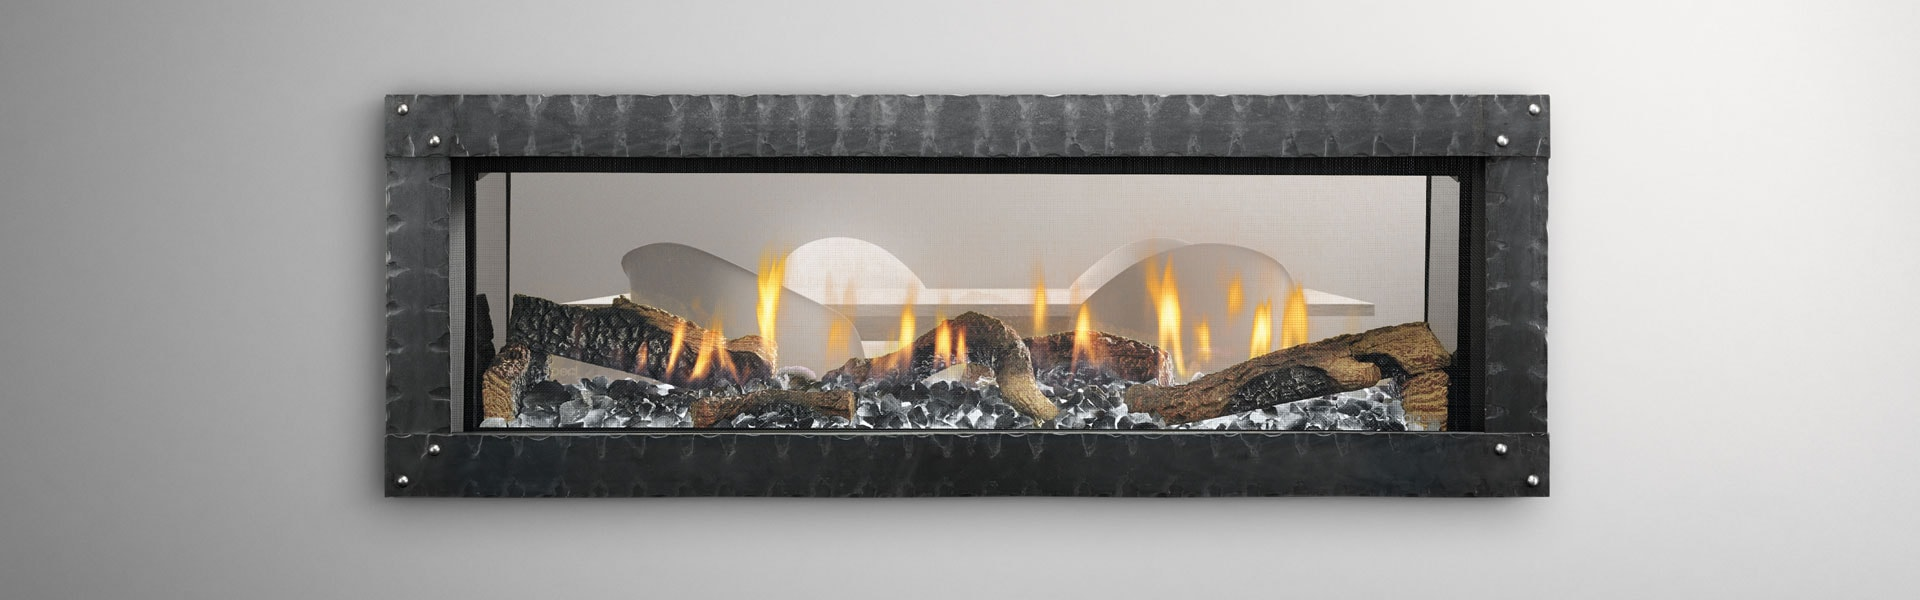 <p>MEZZO48ST with Loft Forge front, ice fog glass and log set</p>